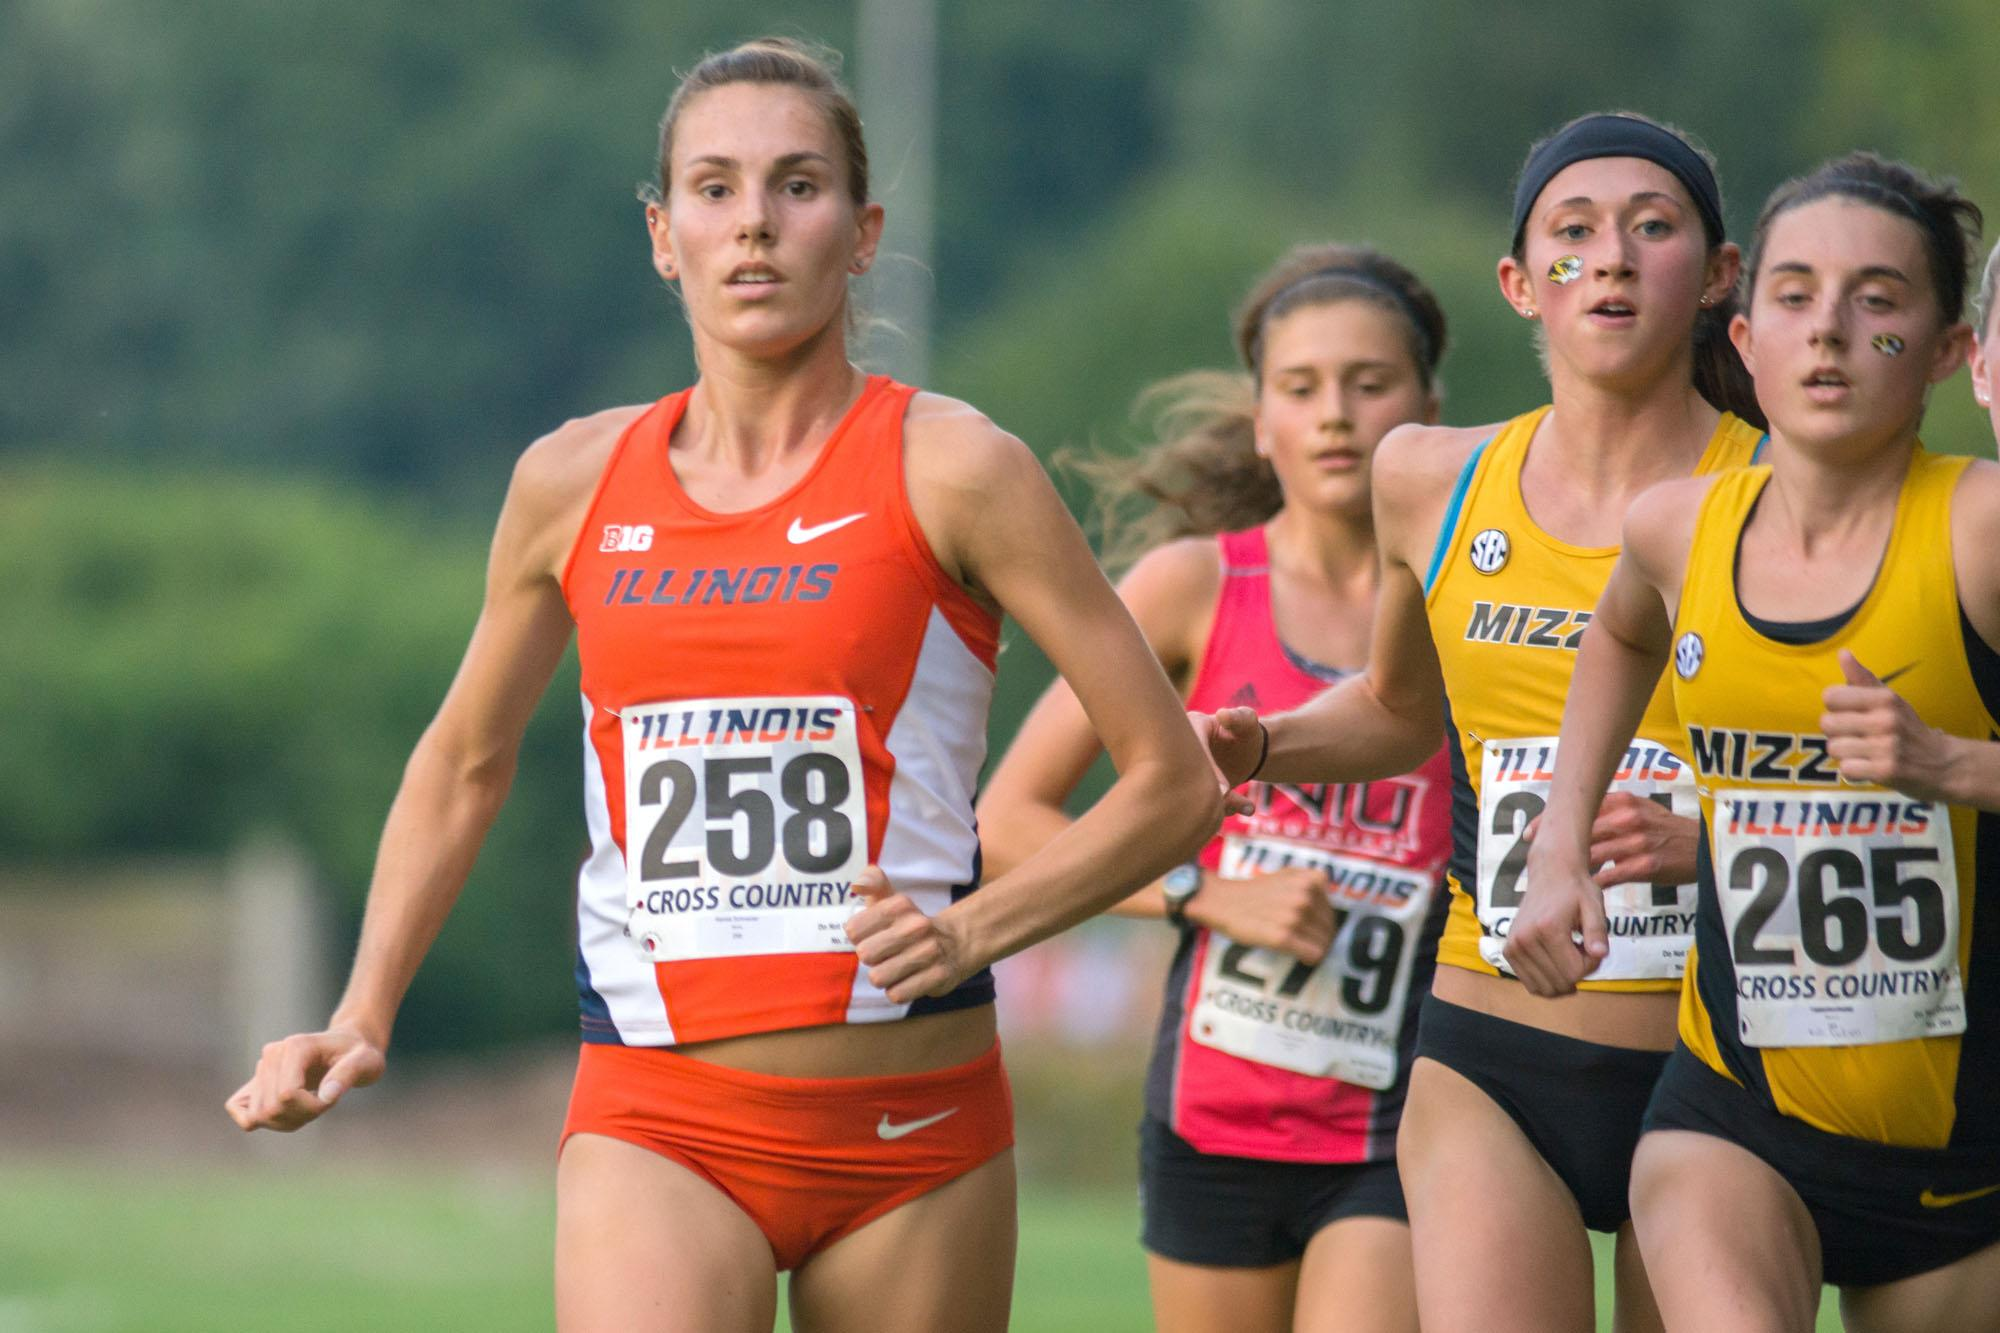 Jovanie De La Cruz The Daily IlliniAlyssa Schneider (258) keeping her cool and staying ahead at the Illini Challenge 2015 at the Arboretum on September 4.